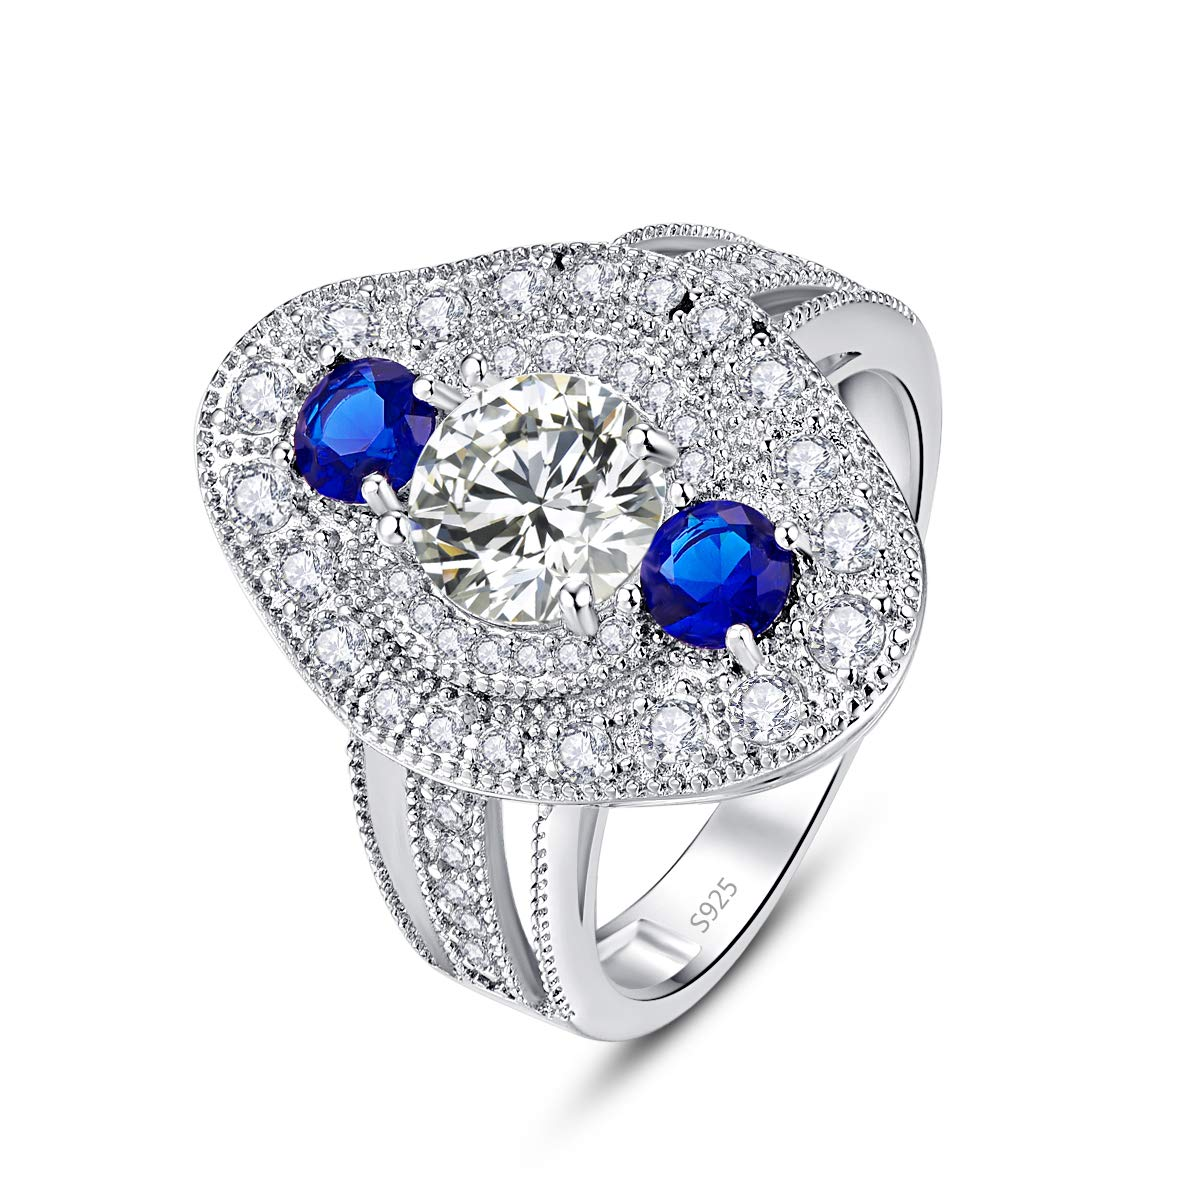 Momius 925 Sterling Silver 3-Stone Cubic Zircon 4-Prong Round Brilliant CZ Pave Halo Triple Row Band Ring for Women Girls